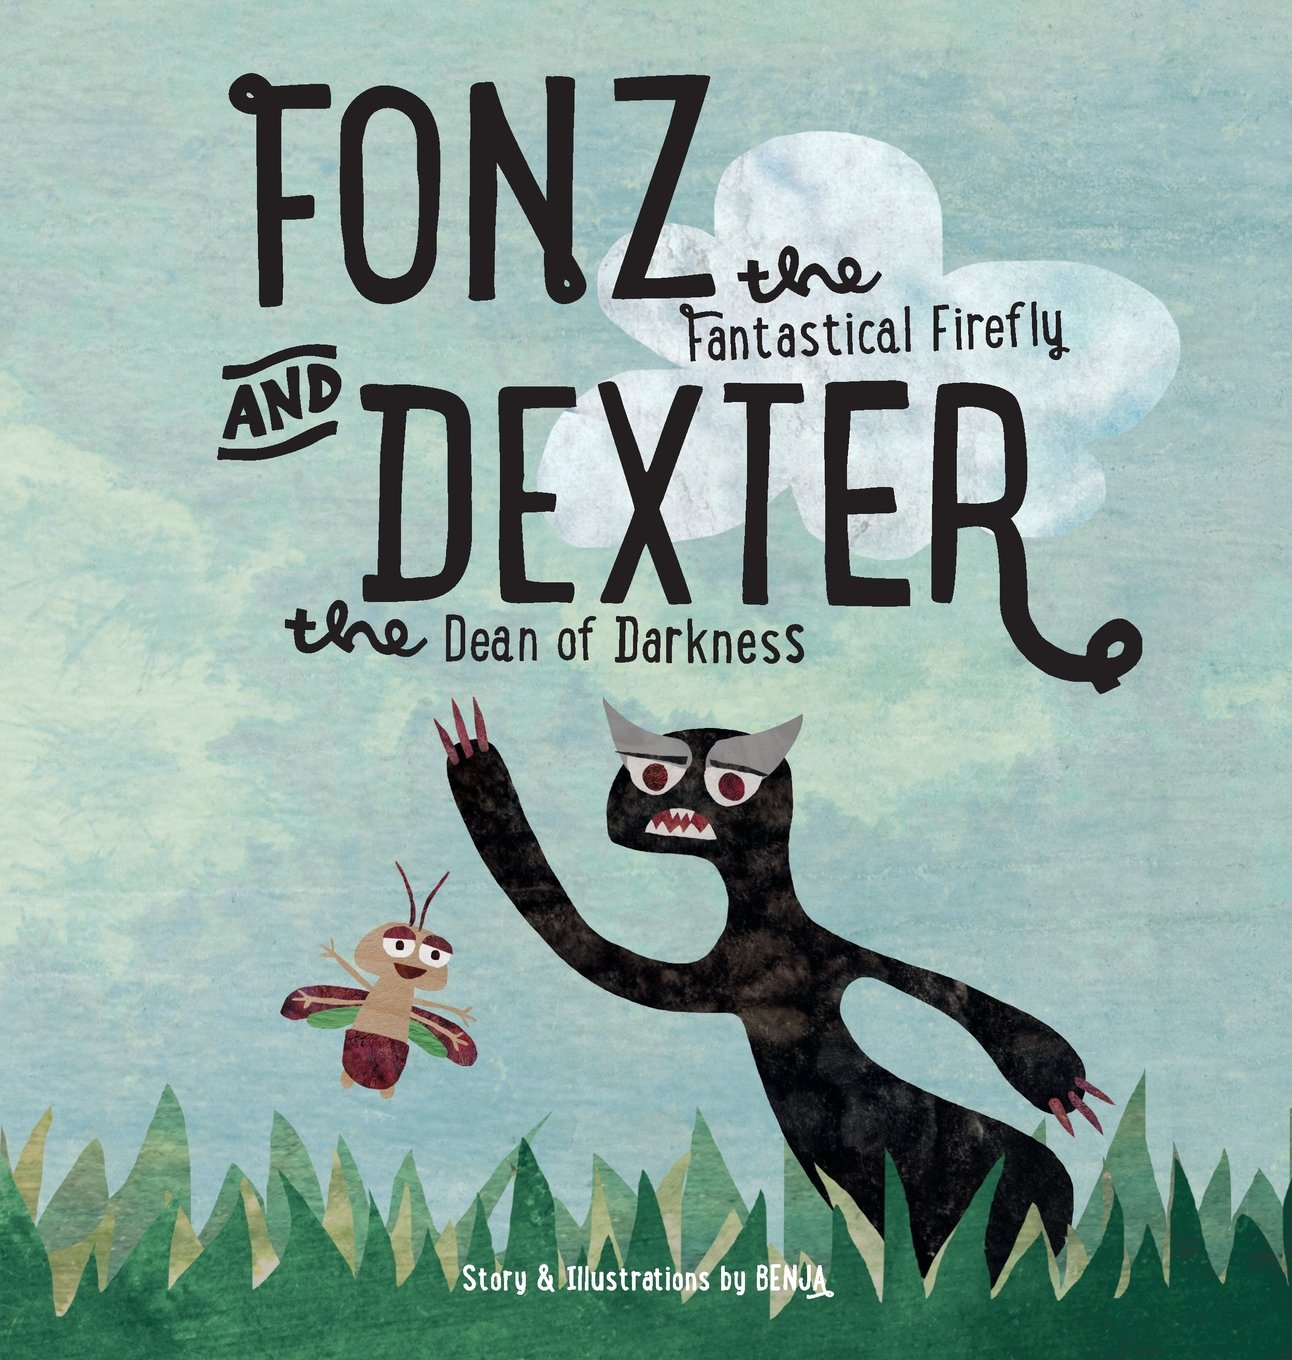 Fonz the Fantastical Firefly and Dexter the Dean of Darkness pdf